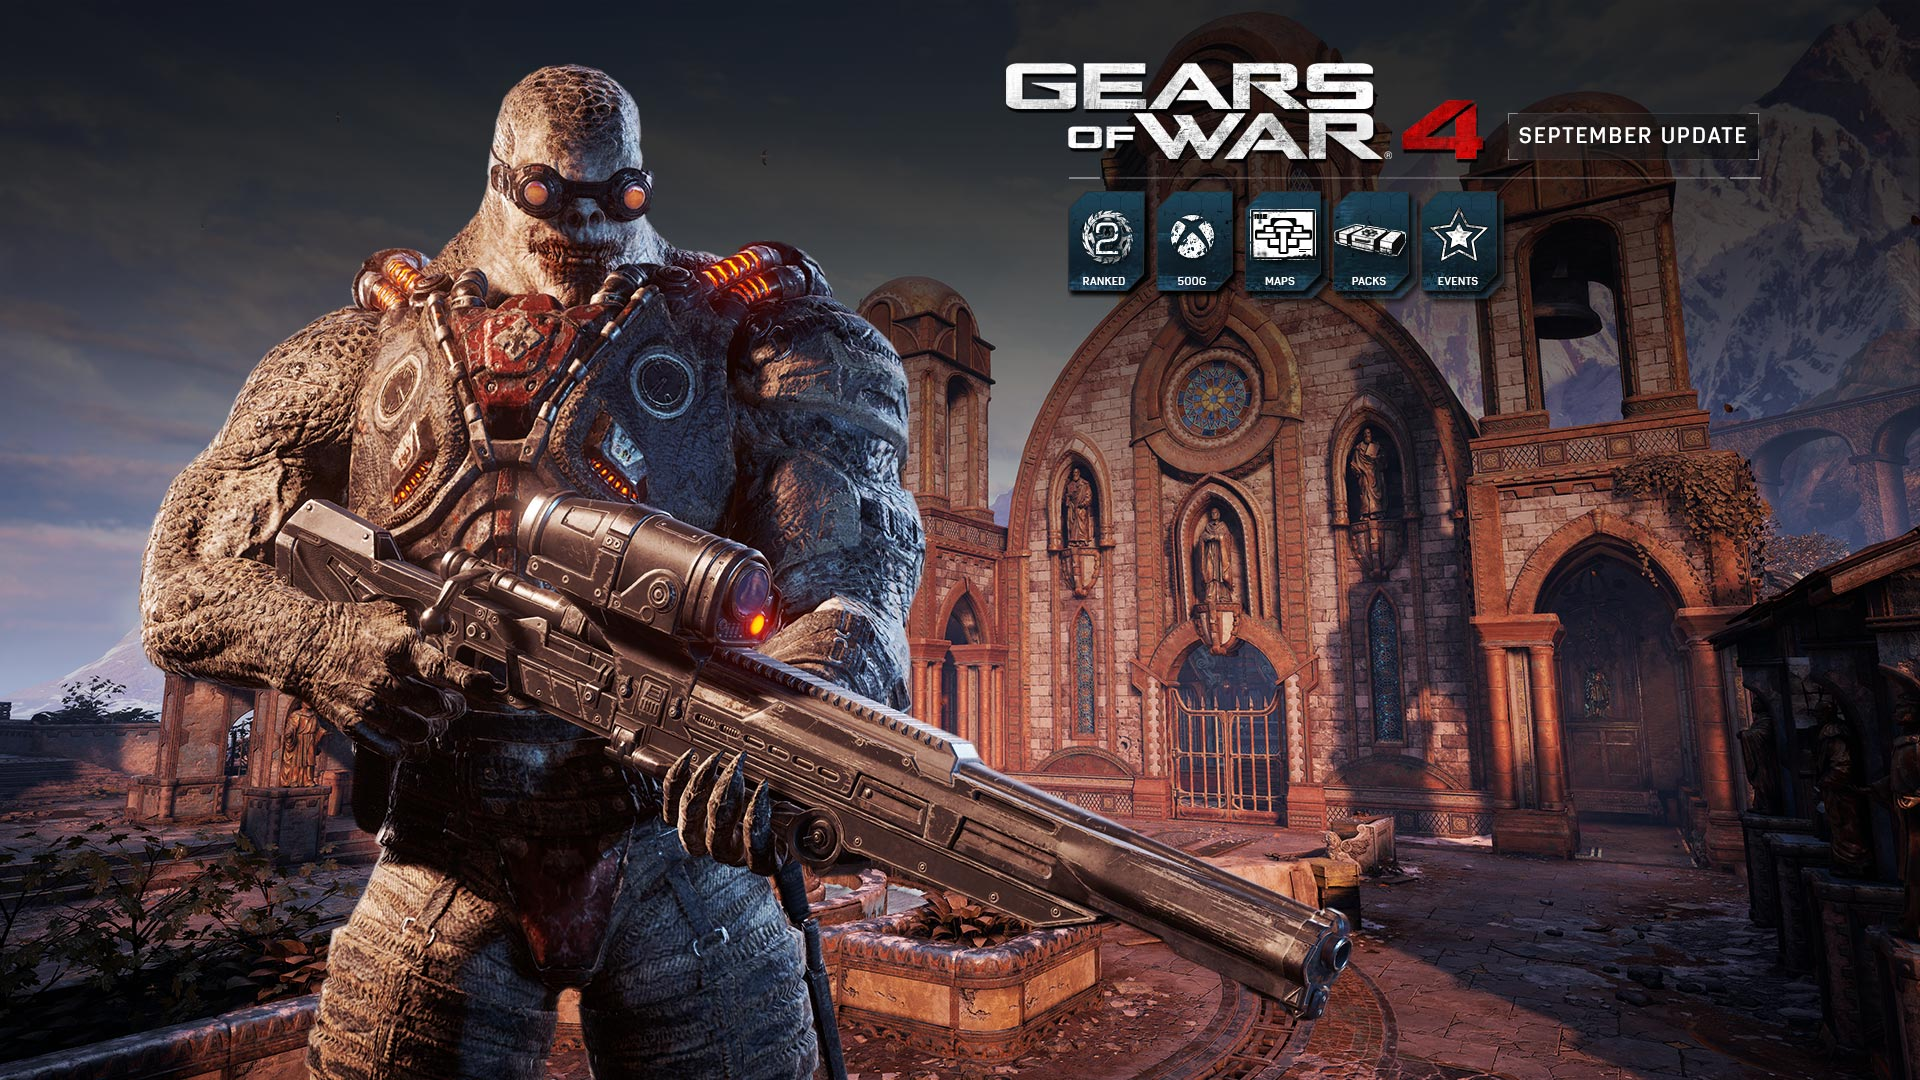 gears of war 2 matchmaking